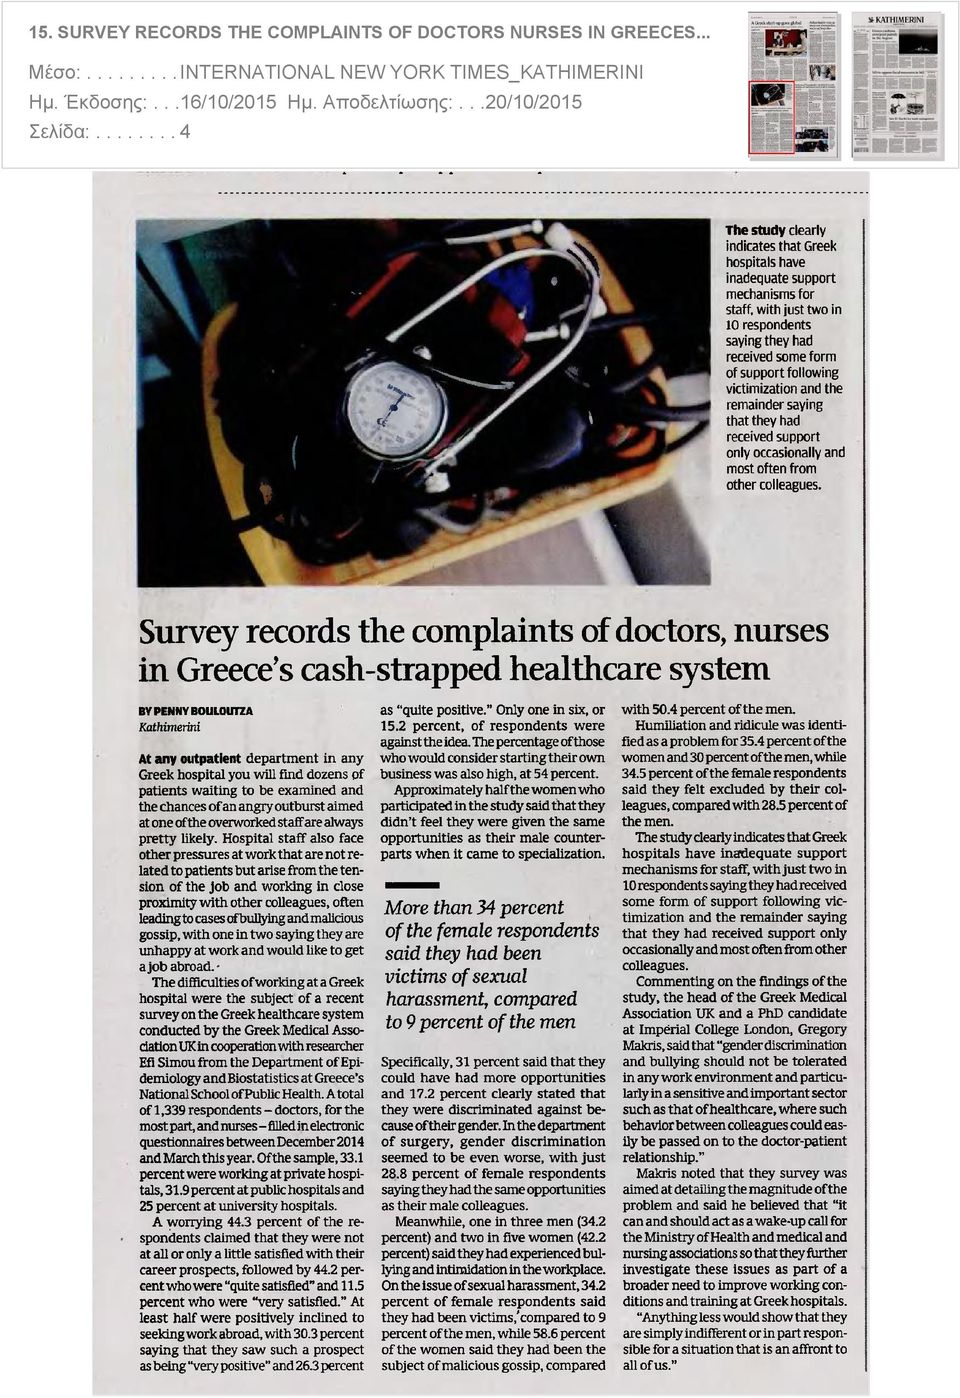 victimization and the remainder saying that they had received support only occasionally and most often from other colleagues Survey records the complaints of doctors nurses in Greece's cash-strapped